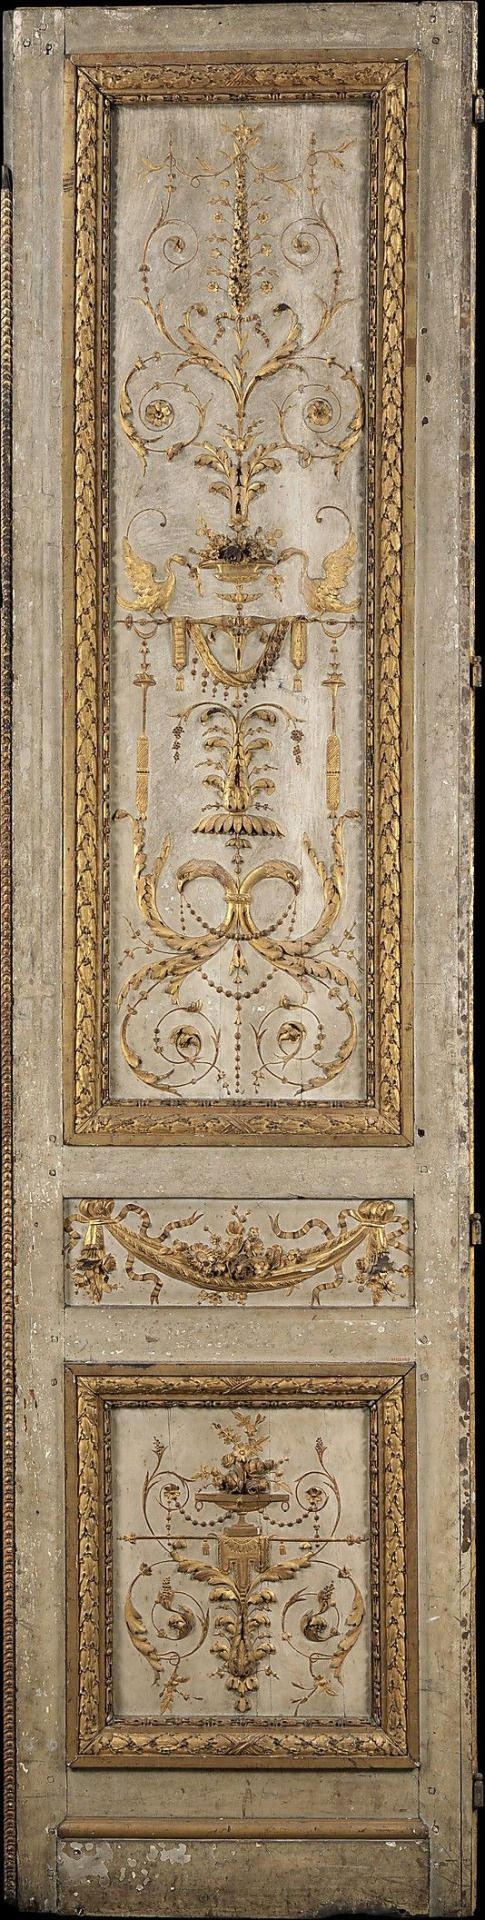 Door panel from the Tuileries Palace. Silver gilt, on wood. Style Louis XVI.